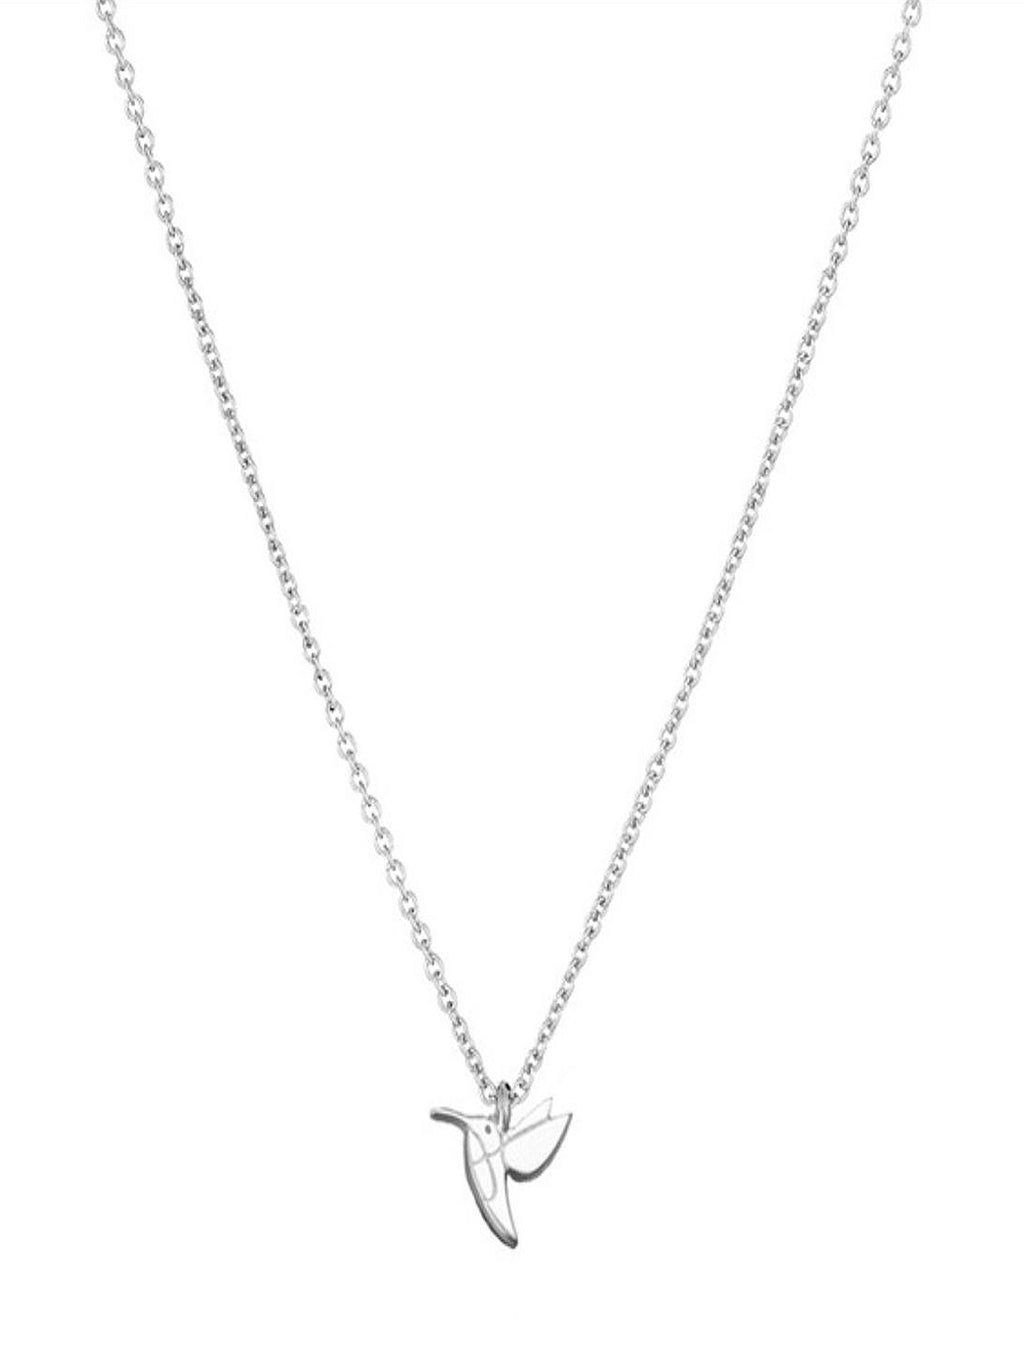 Hummingbird Life Is Beautiful Silver Tone Necklace